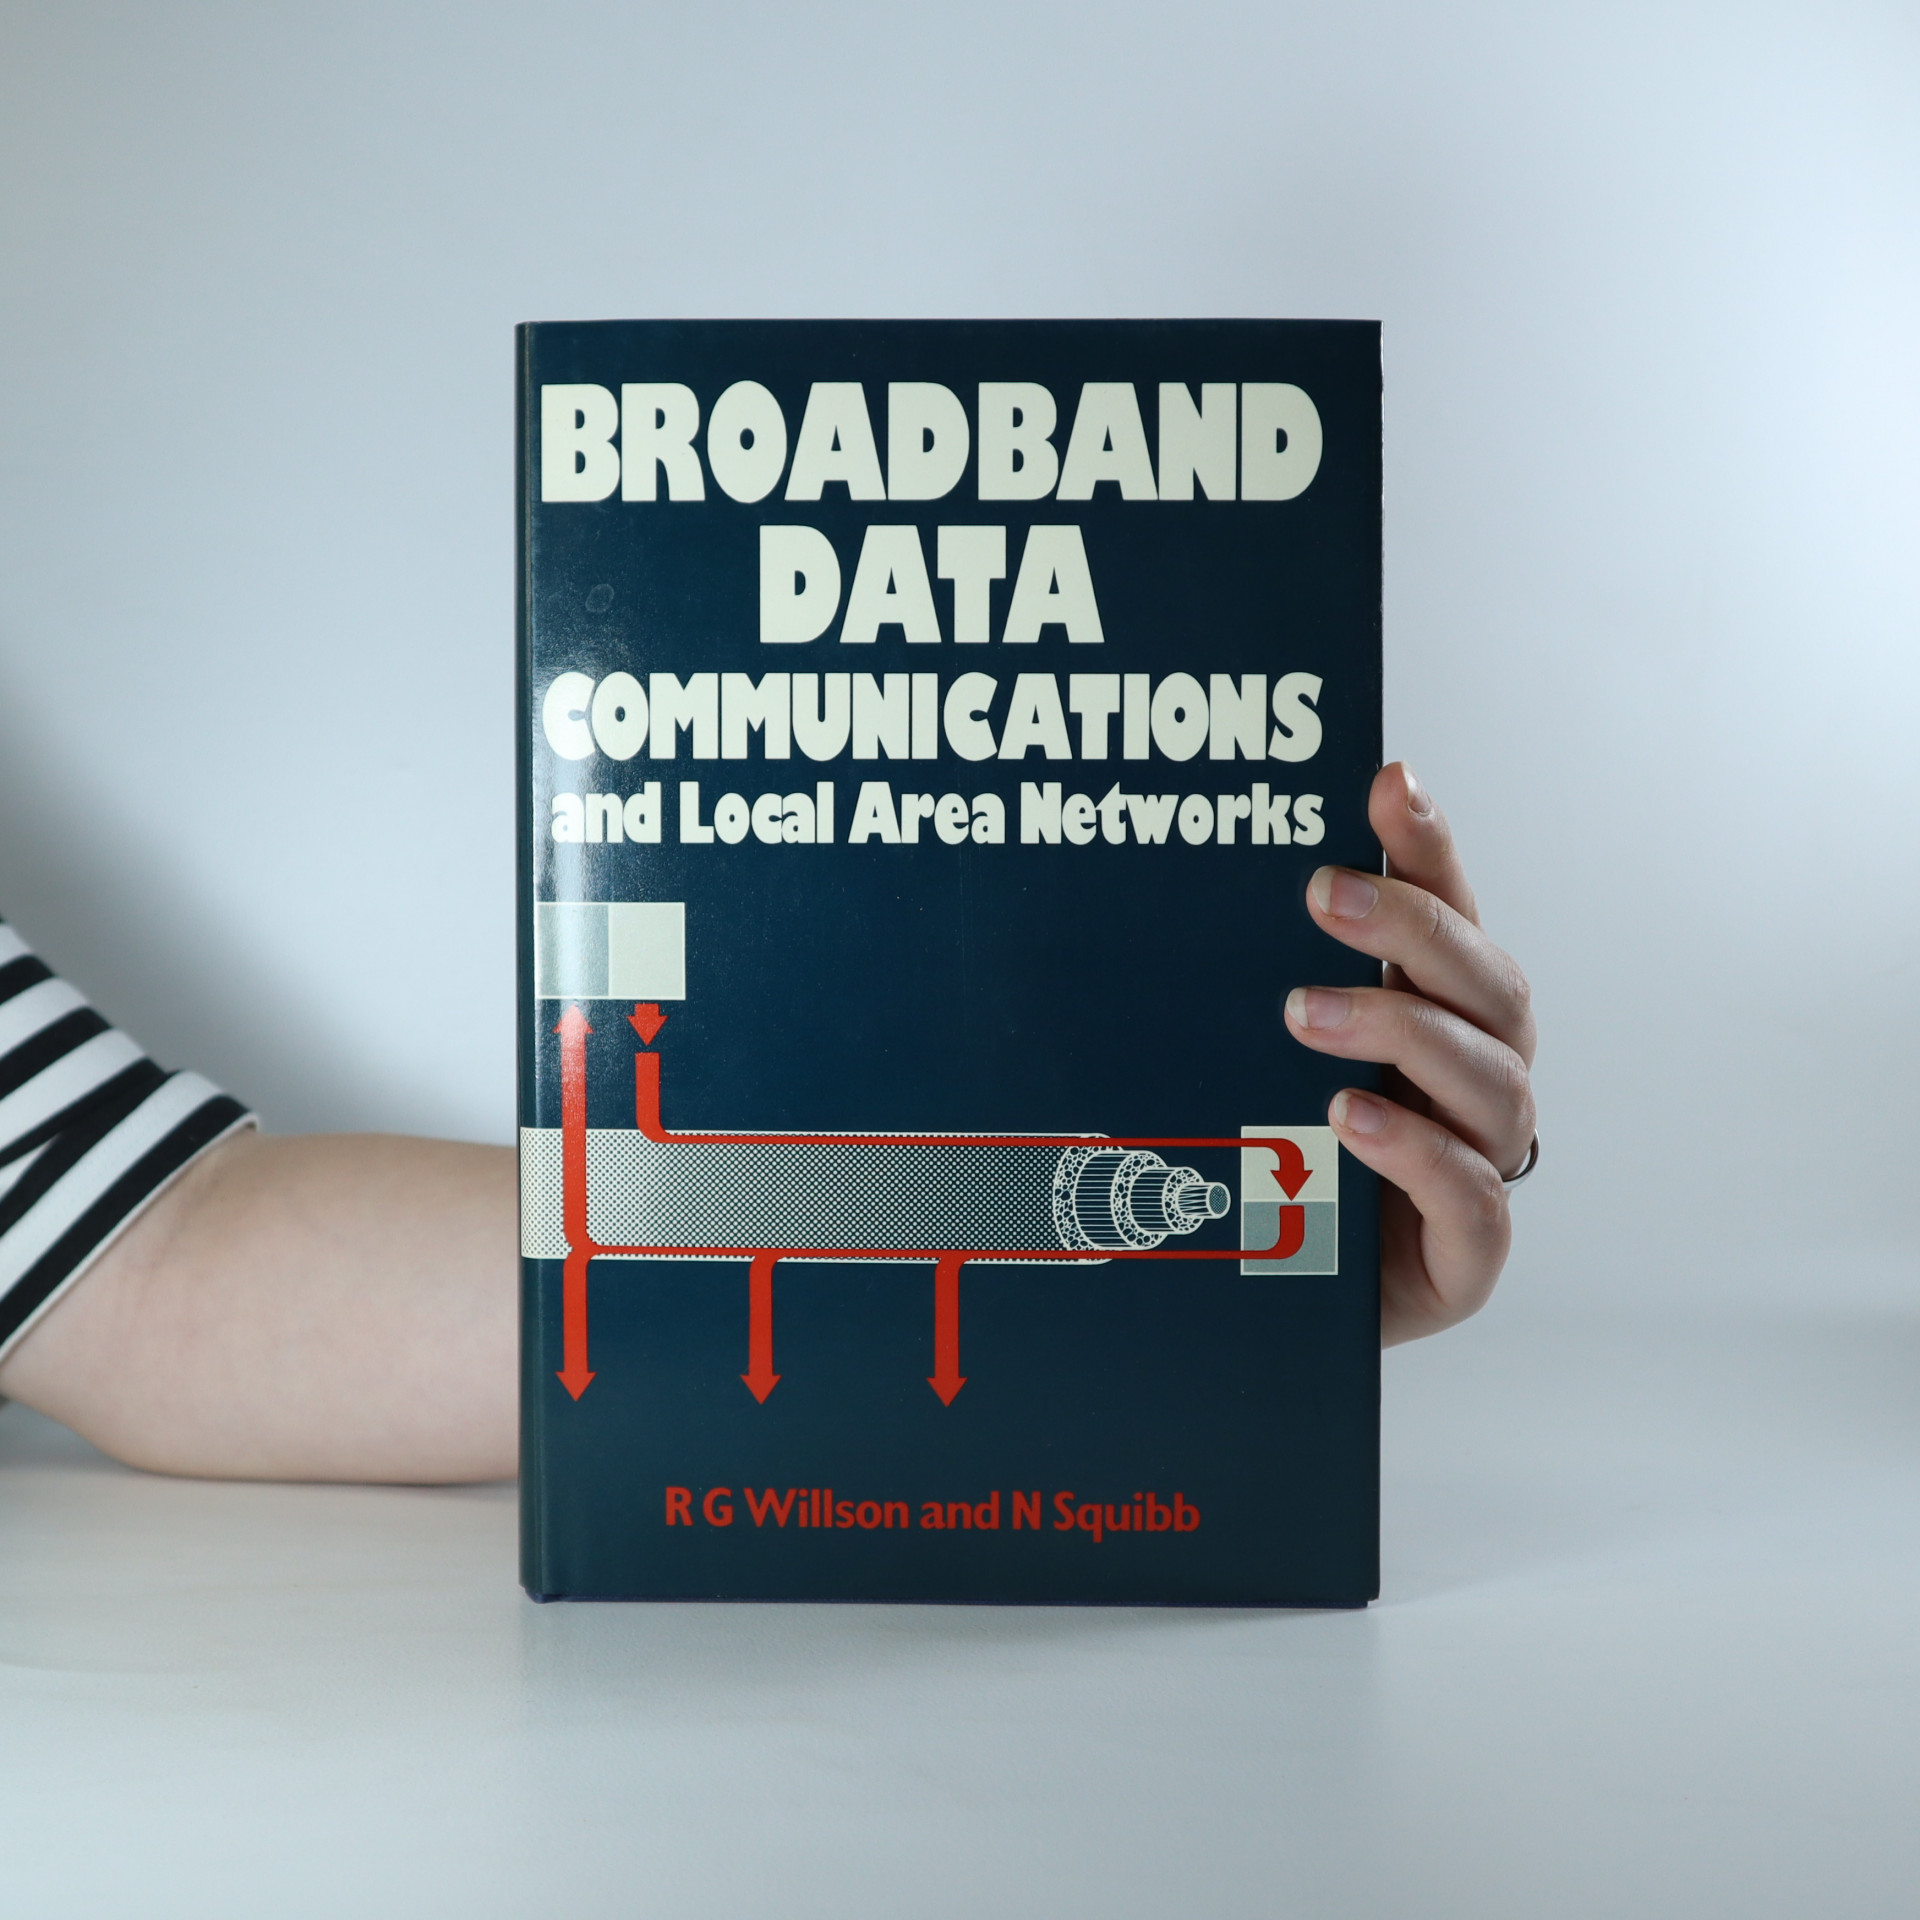 antikvární kniha Broadband Data Communications and Local Area Networks, 1986